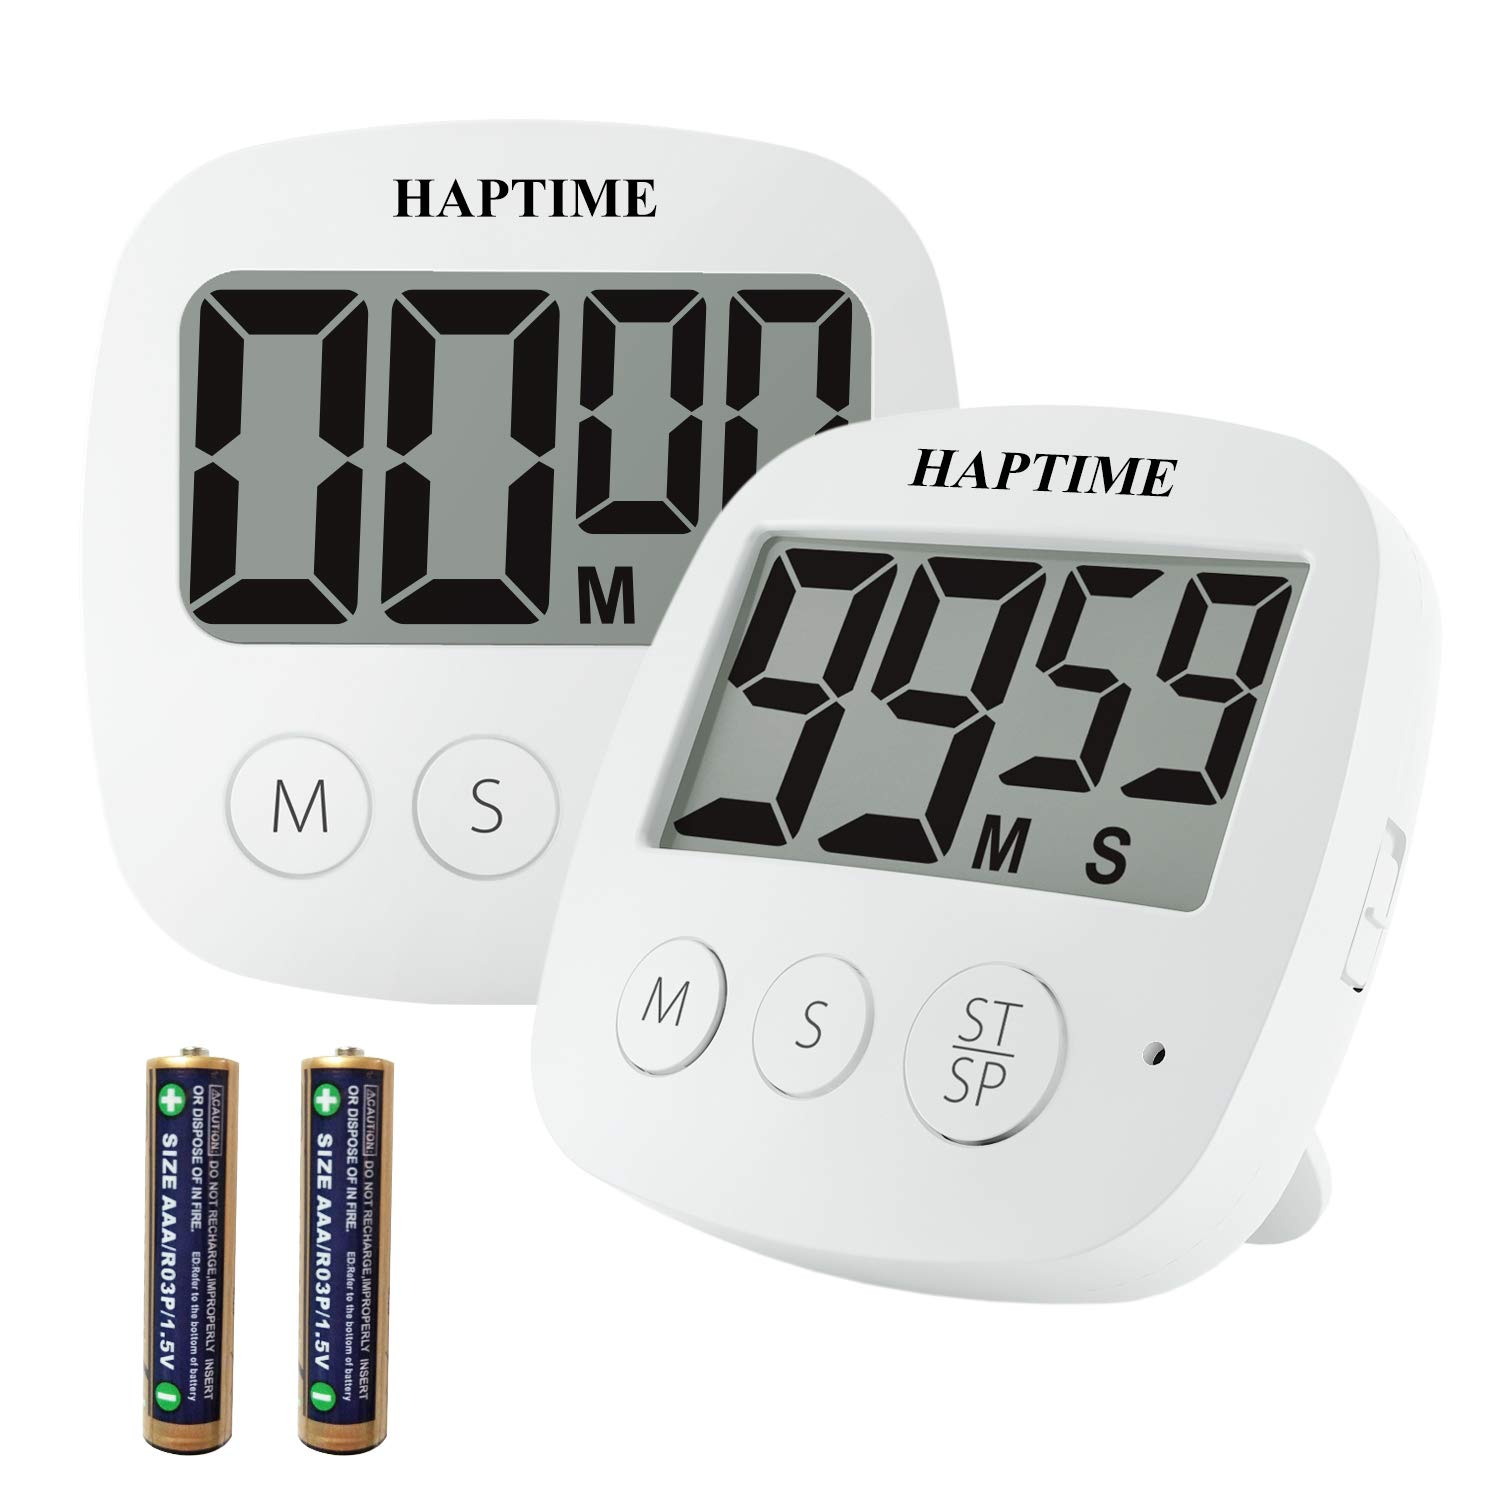 HAPTIME Digital Kitchen Timer for Cooking, Large LCD Display, Strong Magnetic Back, Retractable Stand and Hook, Volume Adjustable for Loud or Gentle Alarm, Auto sleep for Energy Saving - White, 2 Pack